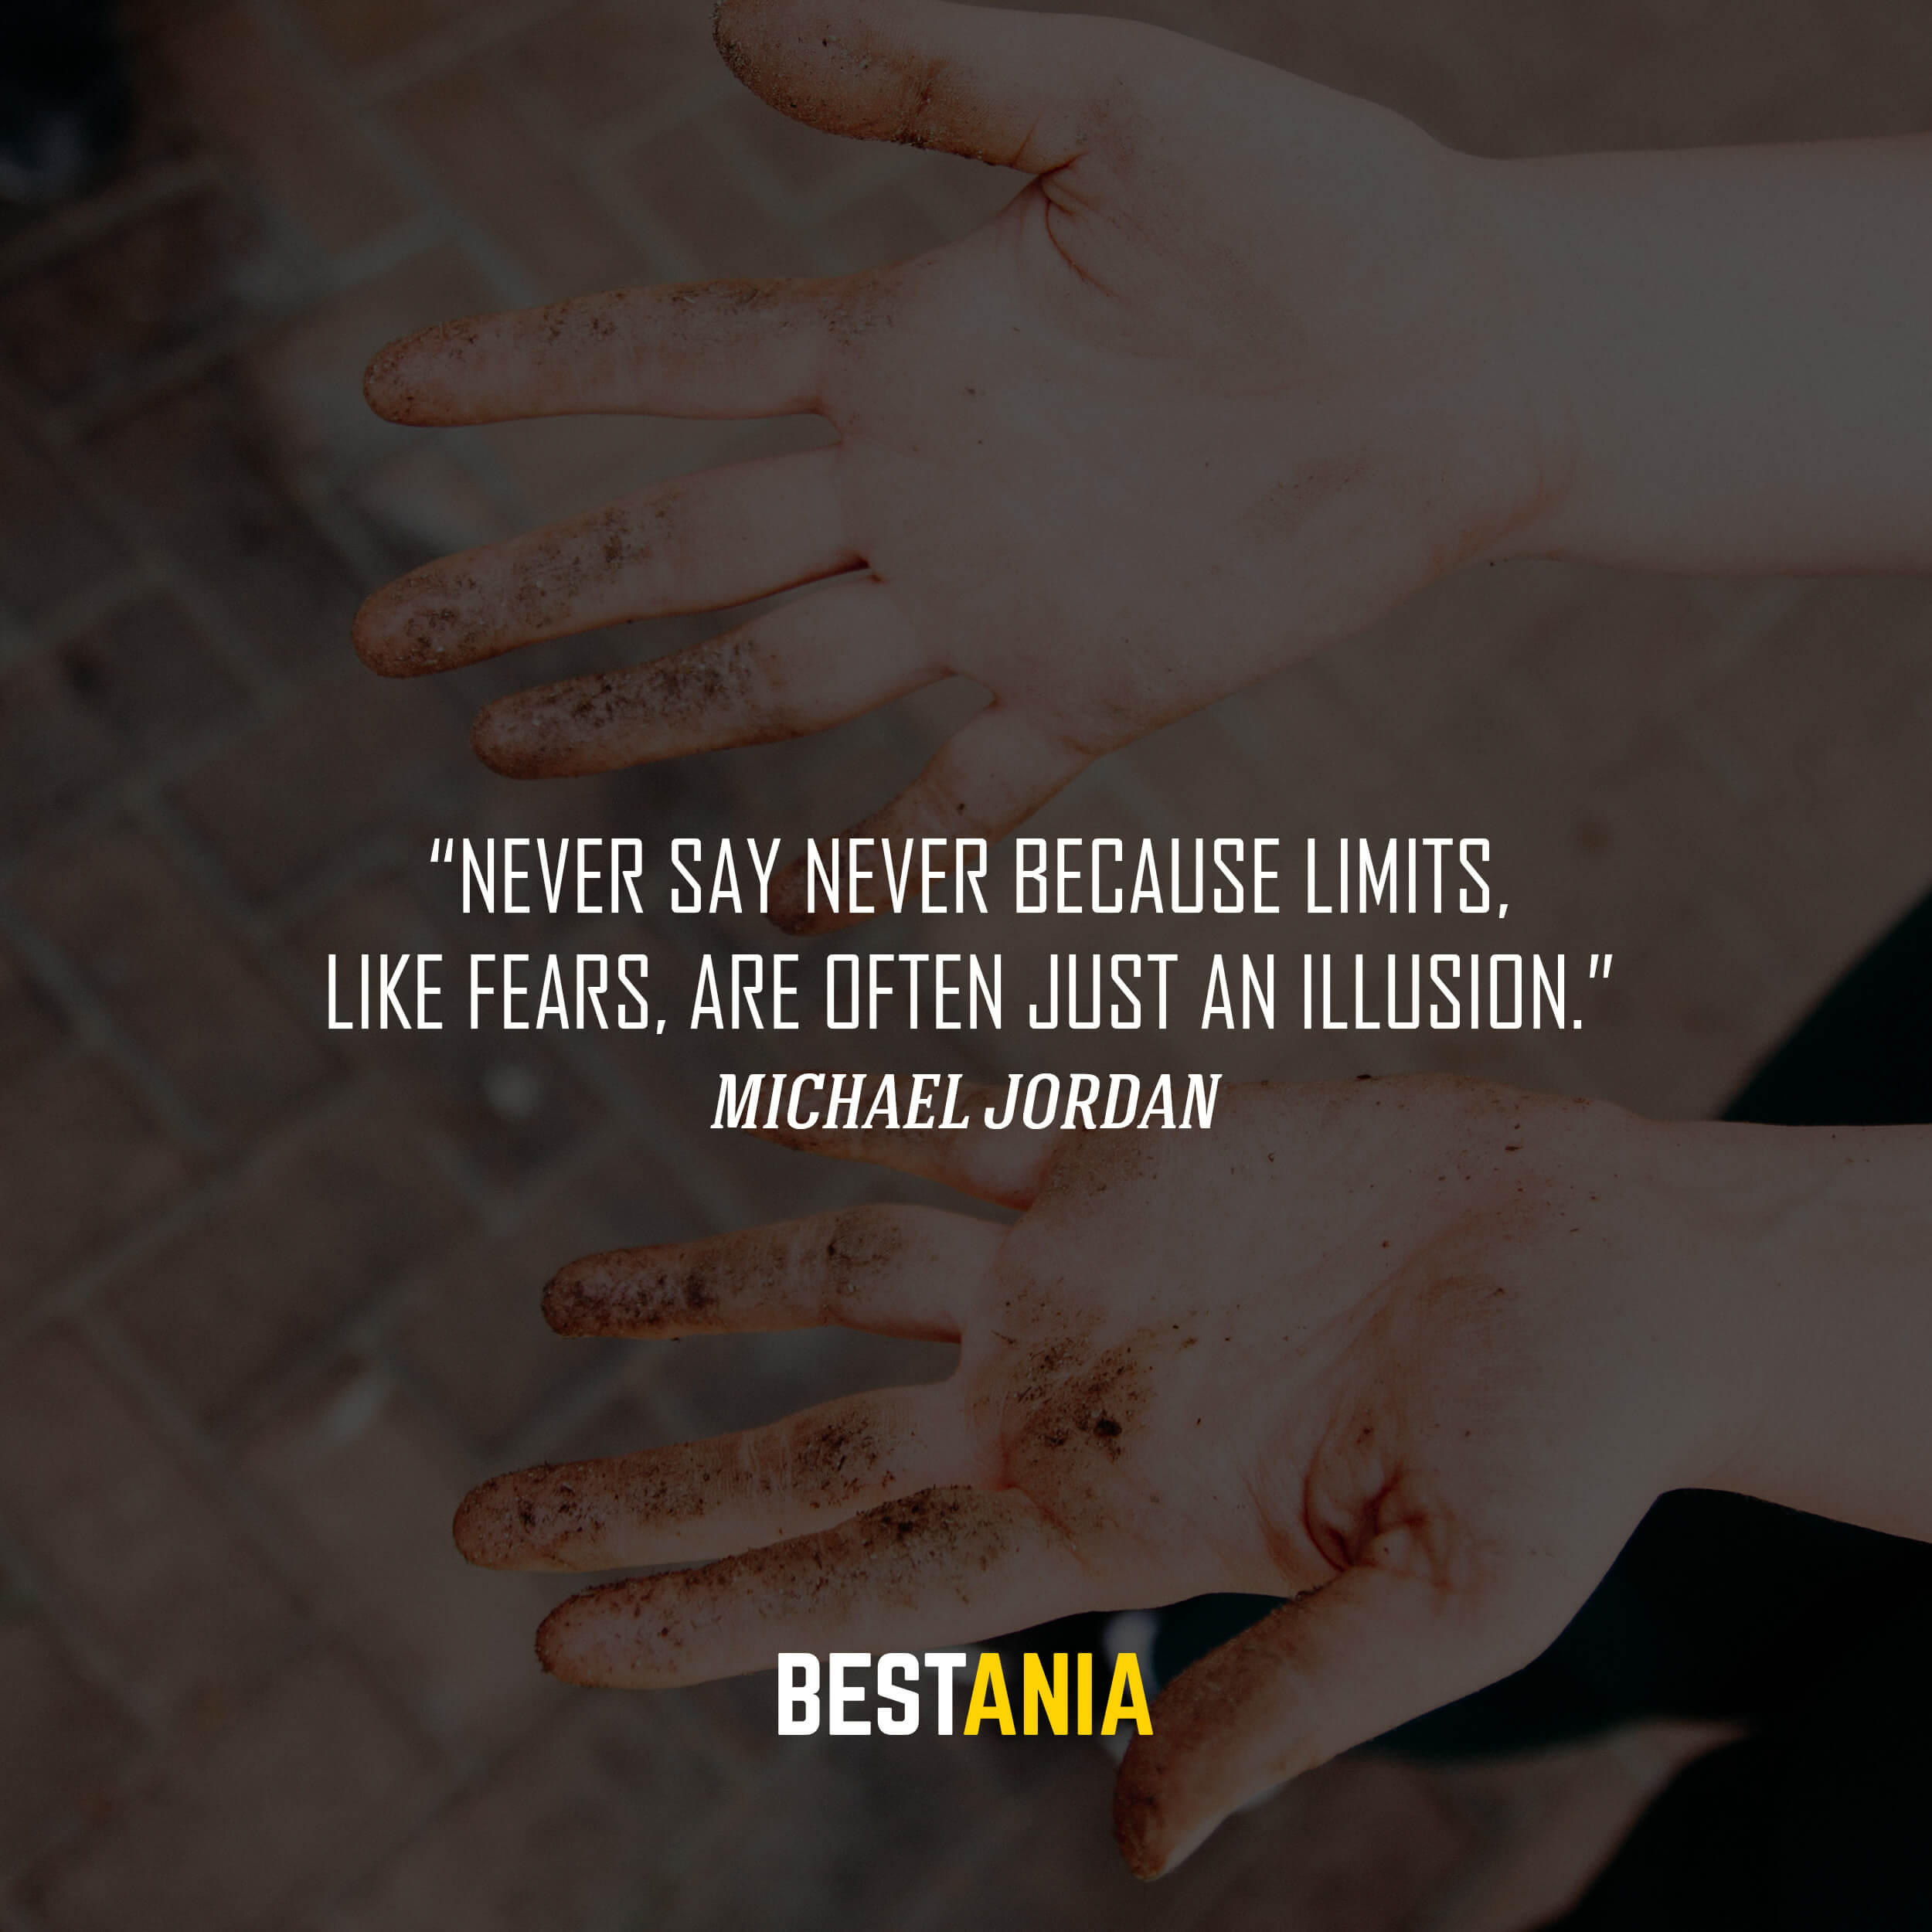 """Never say never because limits, like fears, are often just an illusion."" – Michael Jordan"